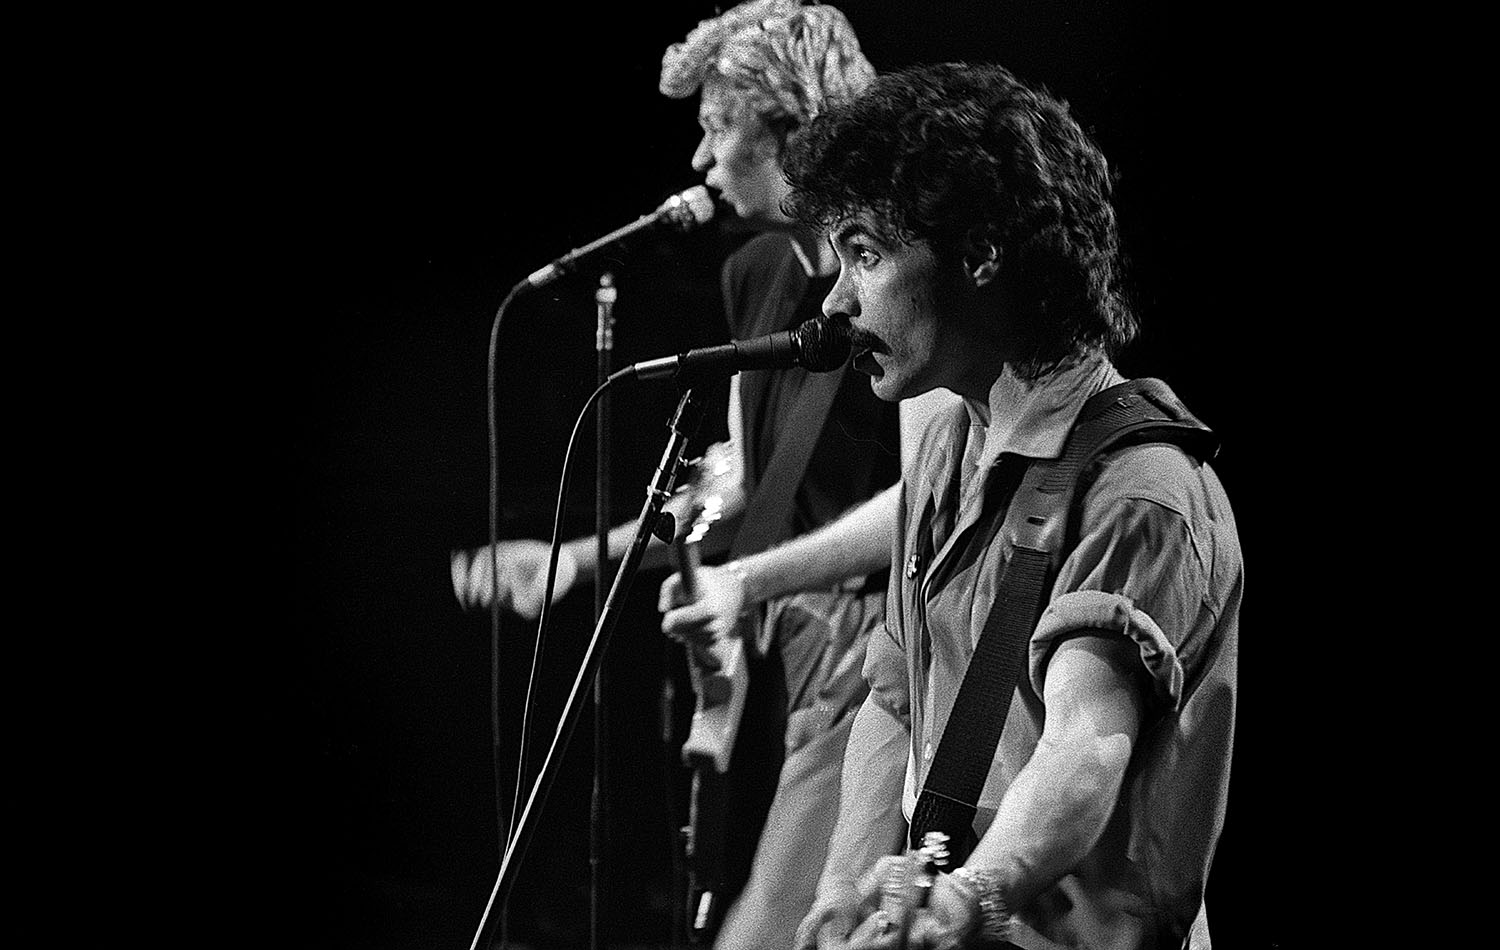 Hall and Oates, 1982 #4